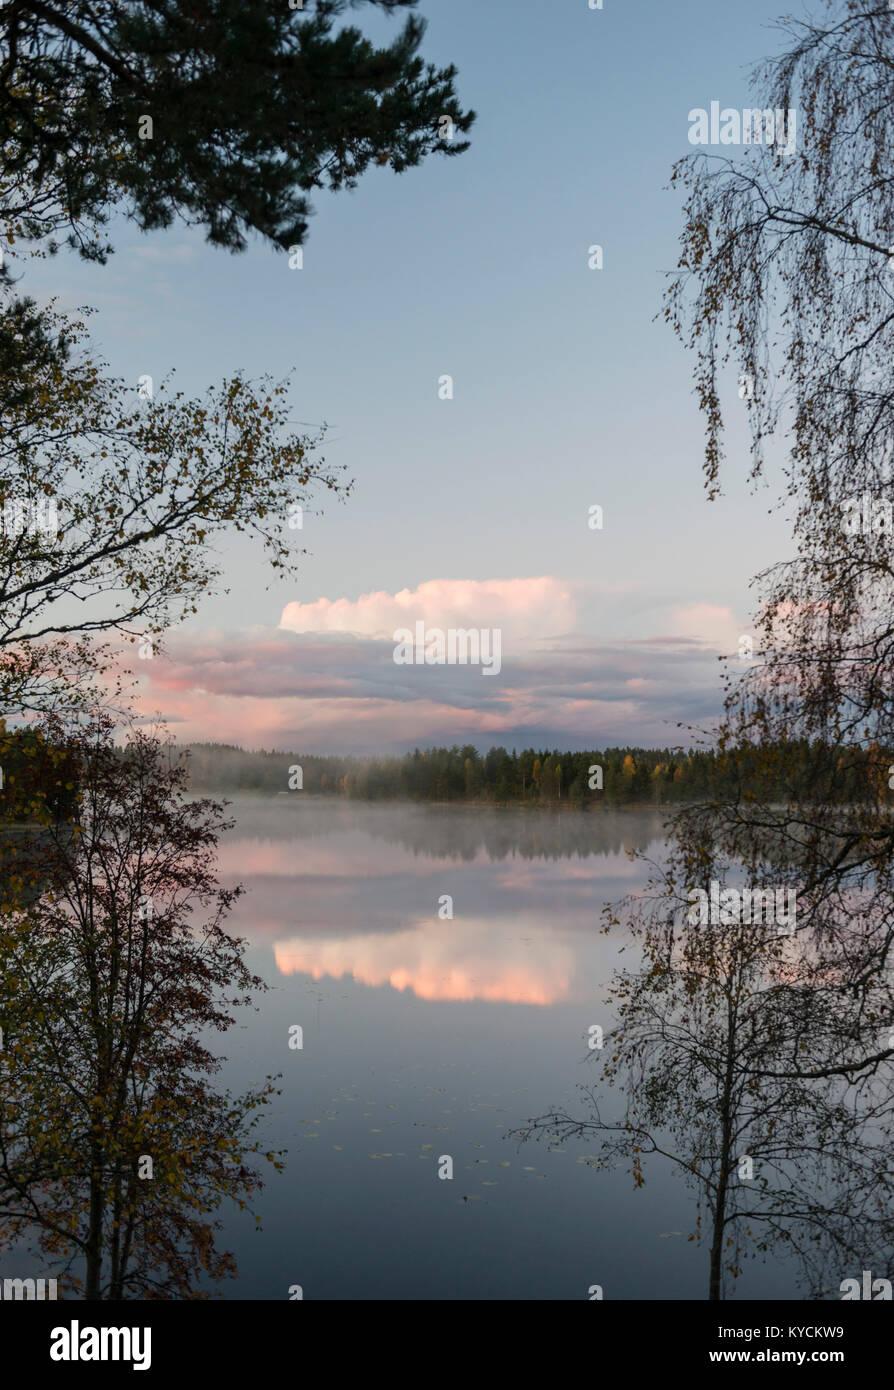 Clouds and calm lake, Sweden - Stock Image